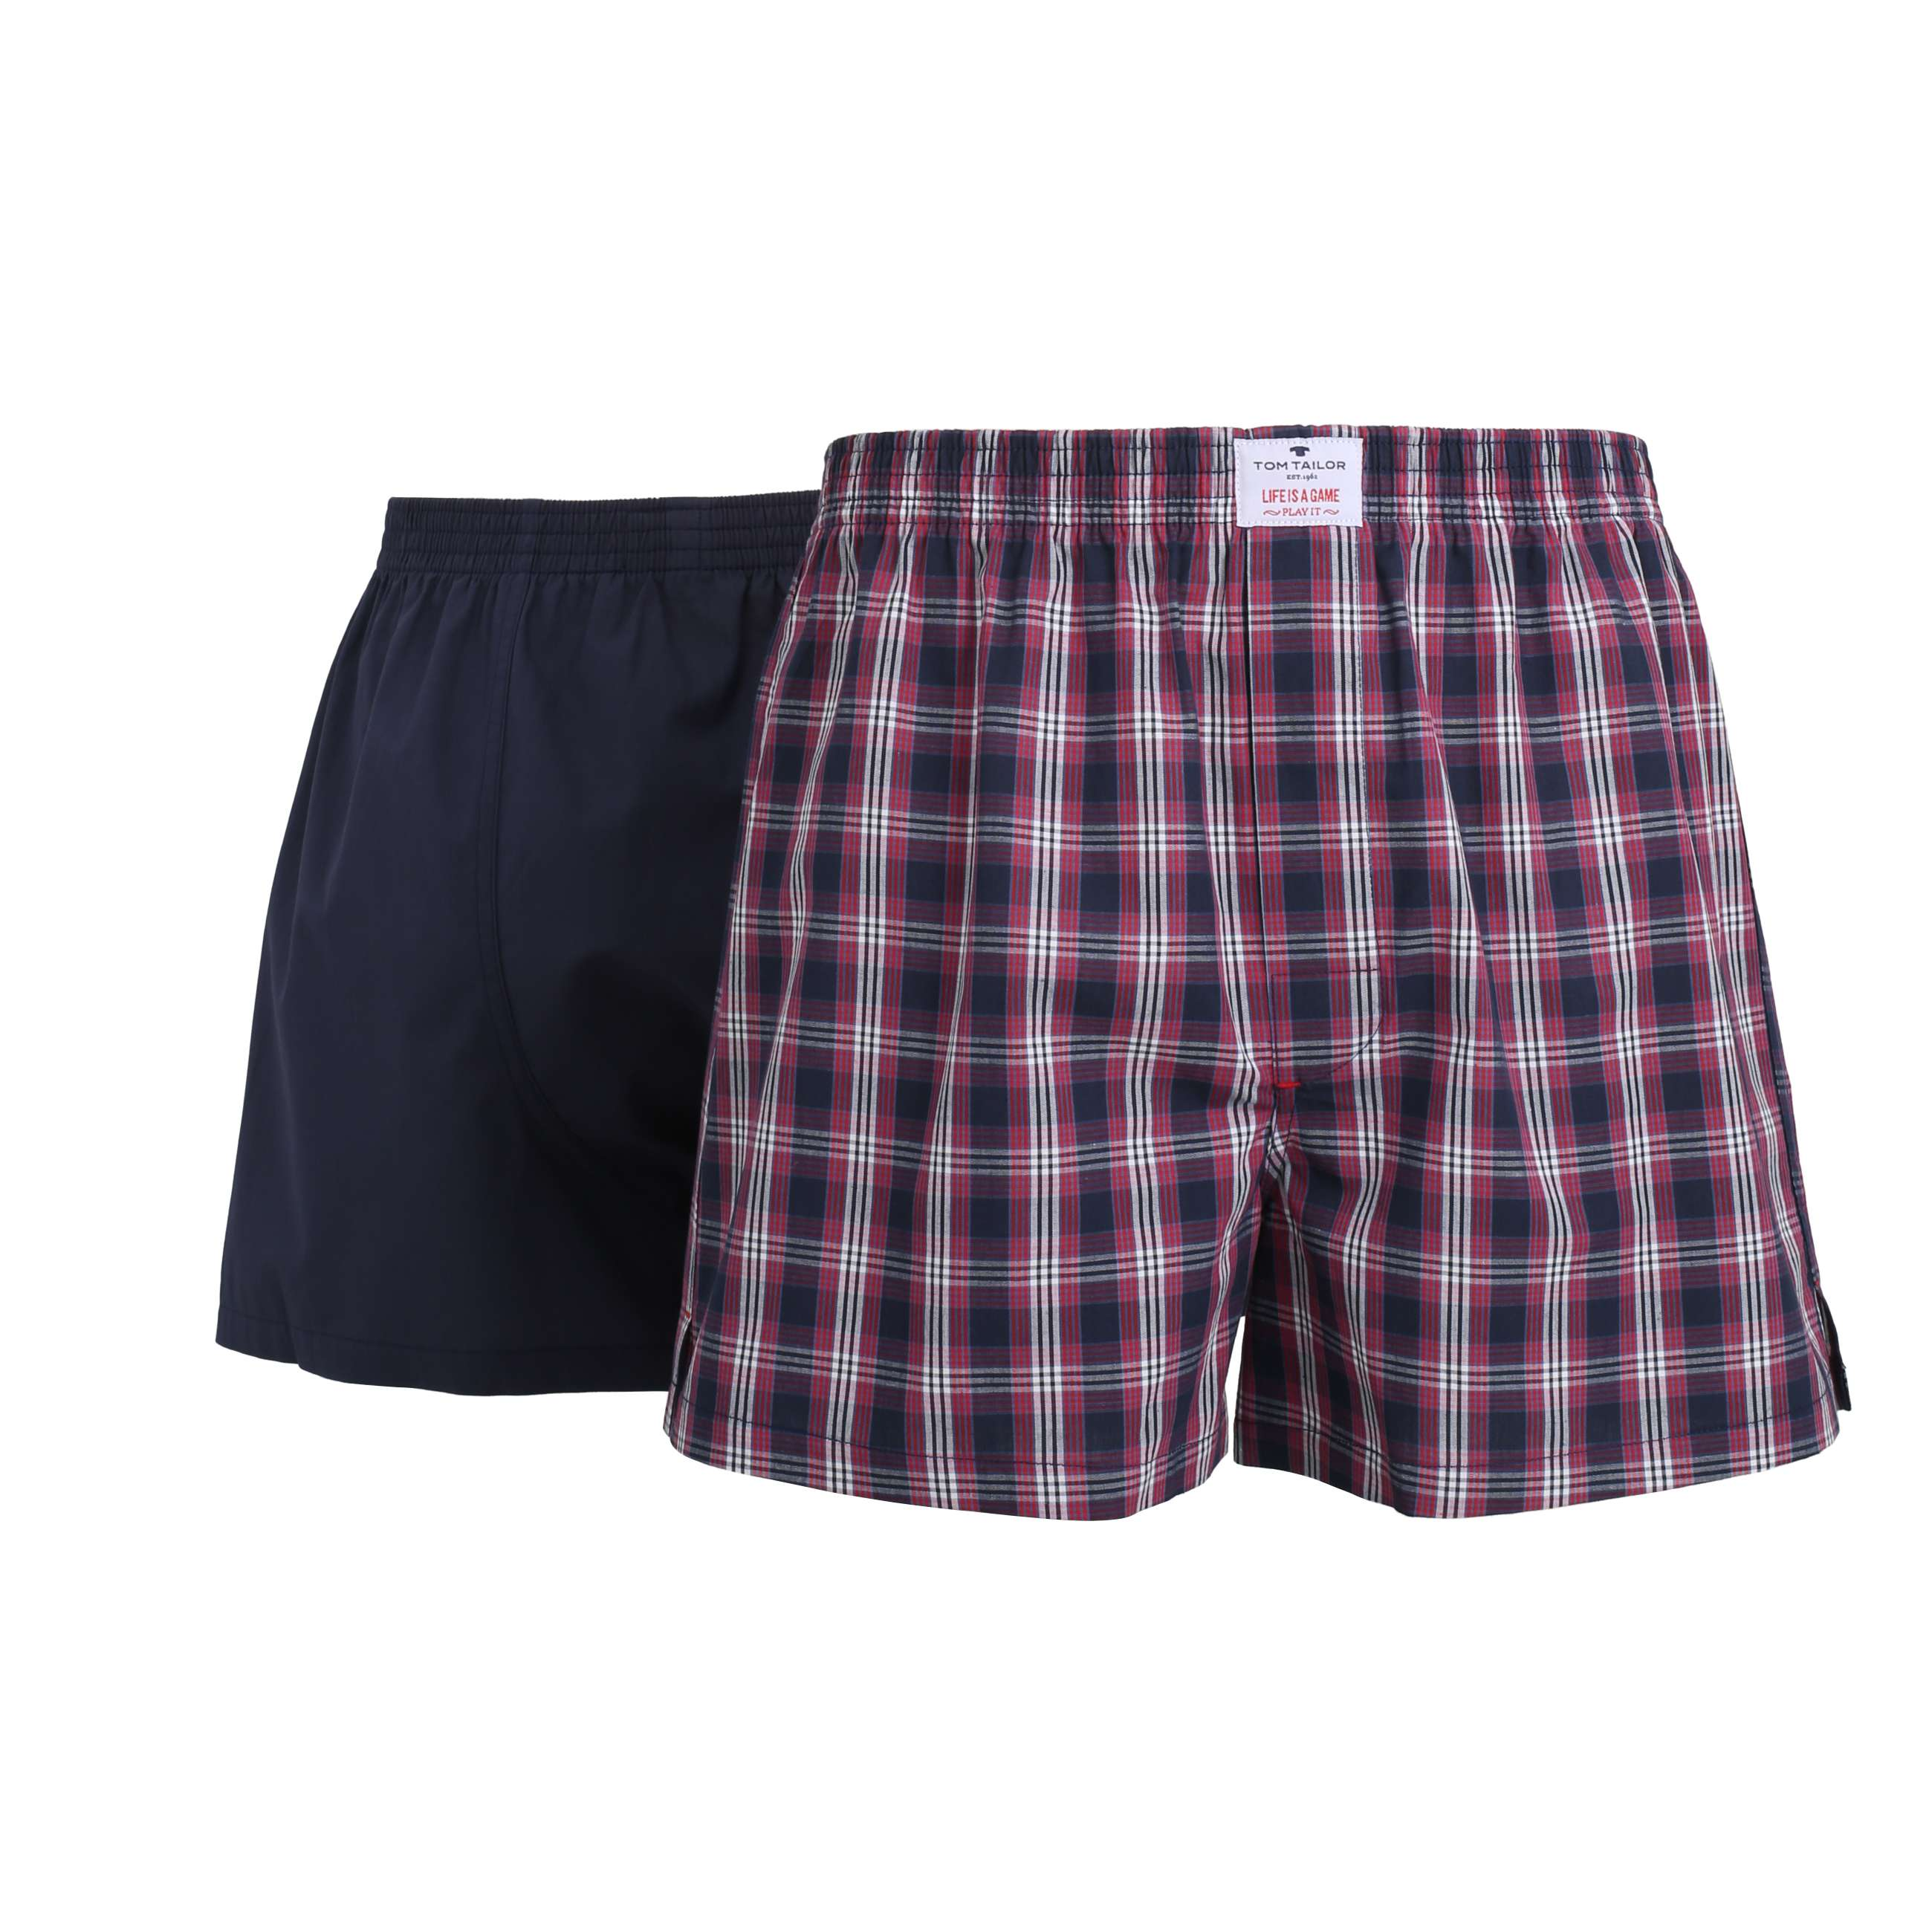 tom tailor herren boxershorts boxershort blau 2er pack. Black Bedroom Furniture Sets. Home Design Ideas